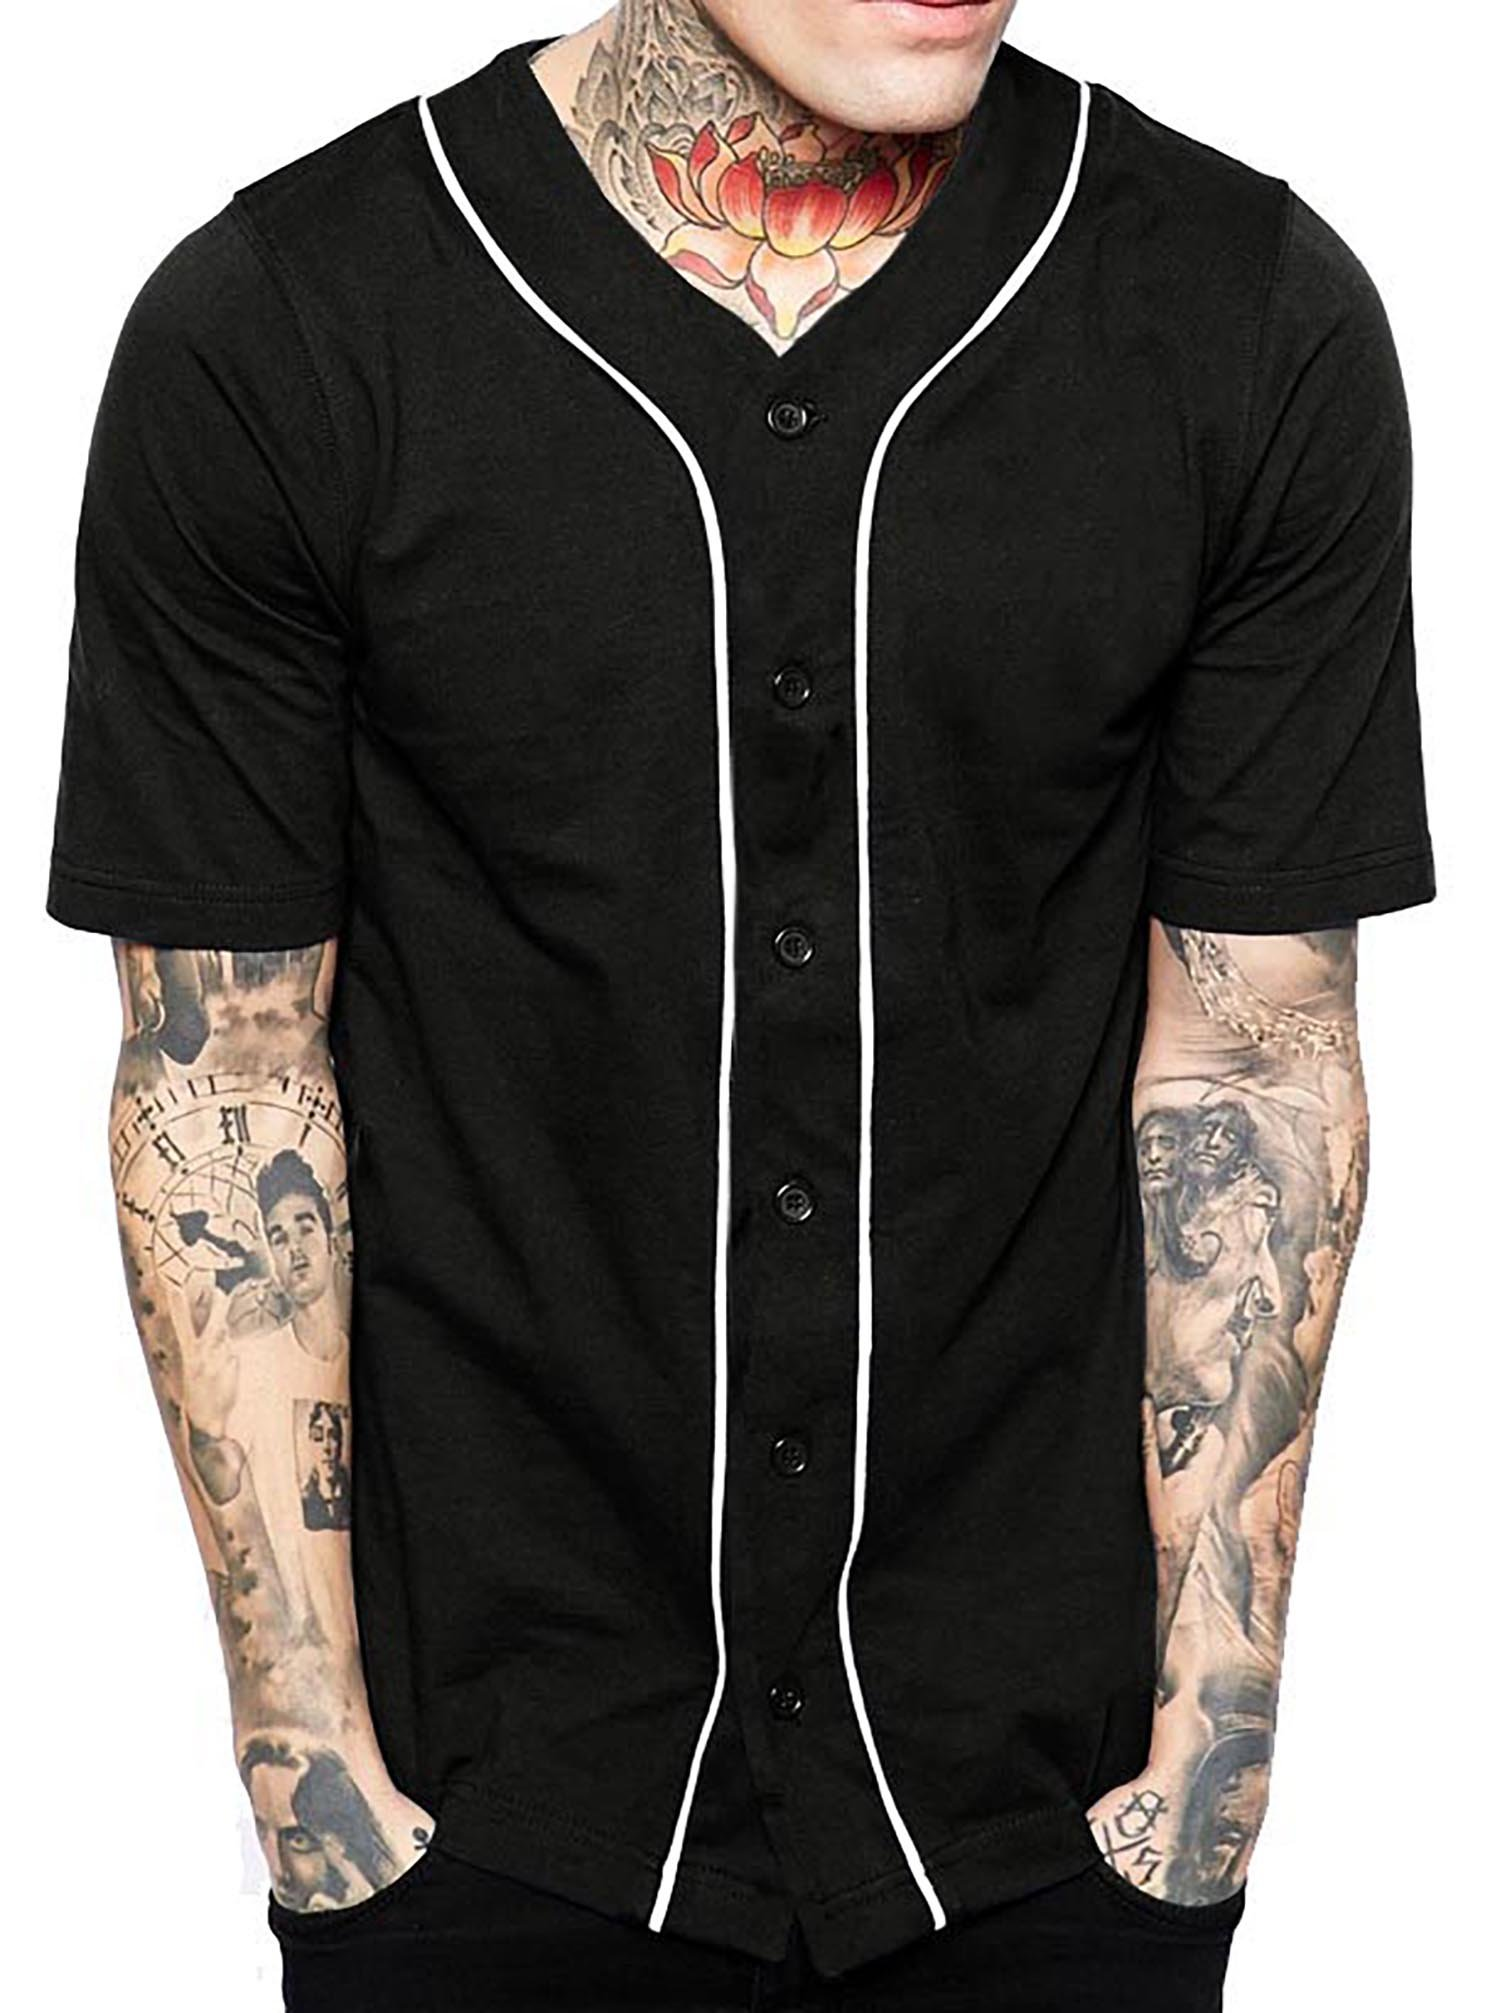 Hat and Beyond Mens Baseball Button Down Jersey Hipster Hip Hop T Shirts 1UPA01 02 (Large, Black/White) by Hat and Beyond